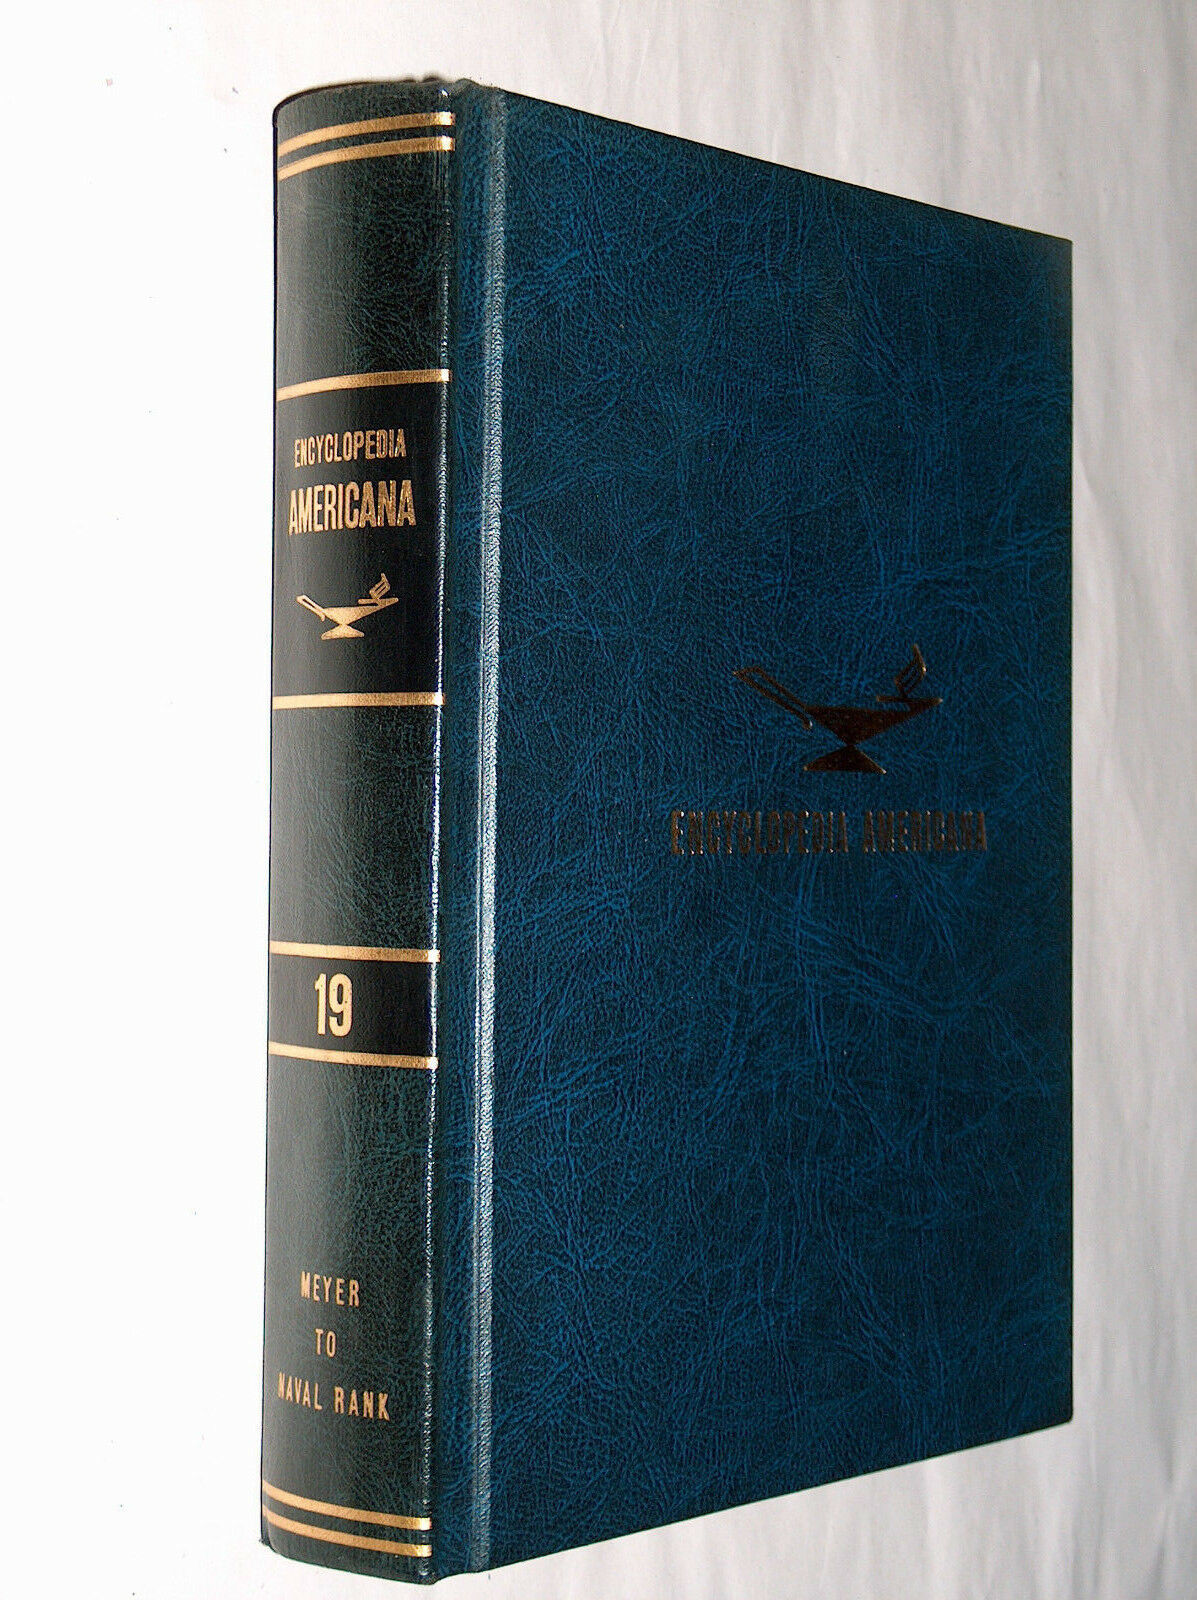 Primary image for 1966 Encyclopedia Americana Replacement Blue Edition Vol 19 Meyer To Naval Rank